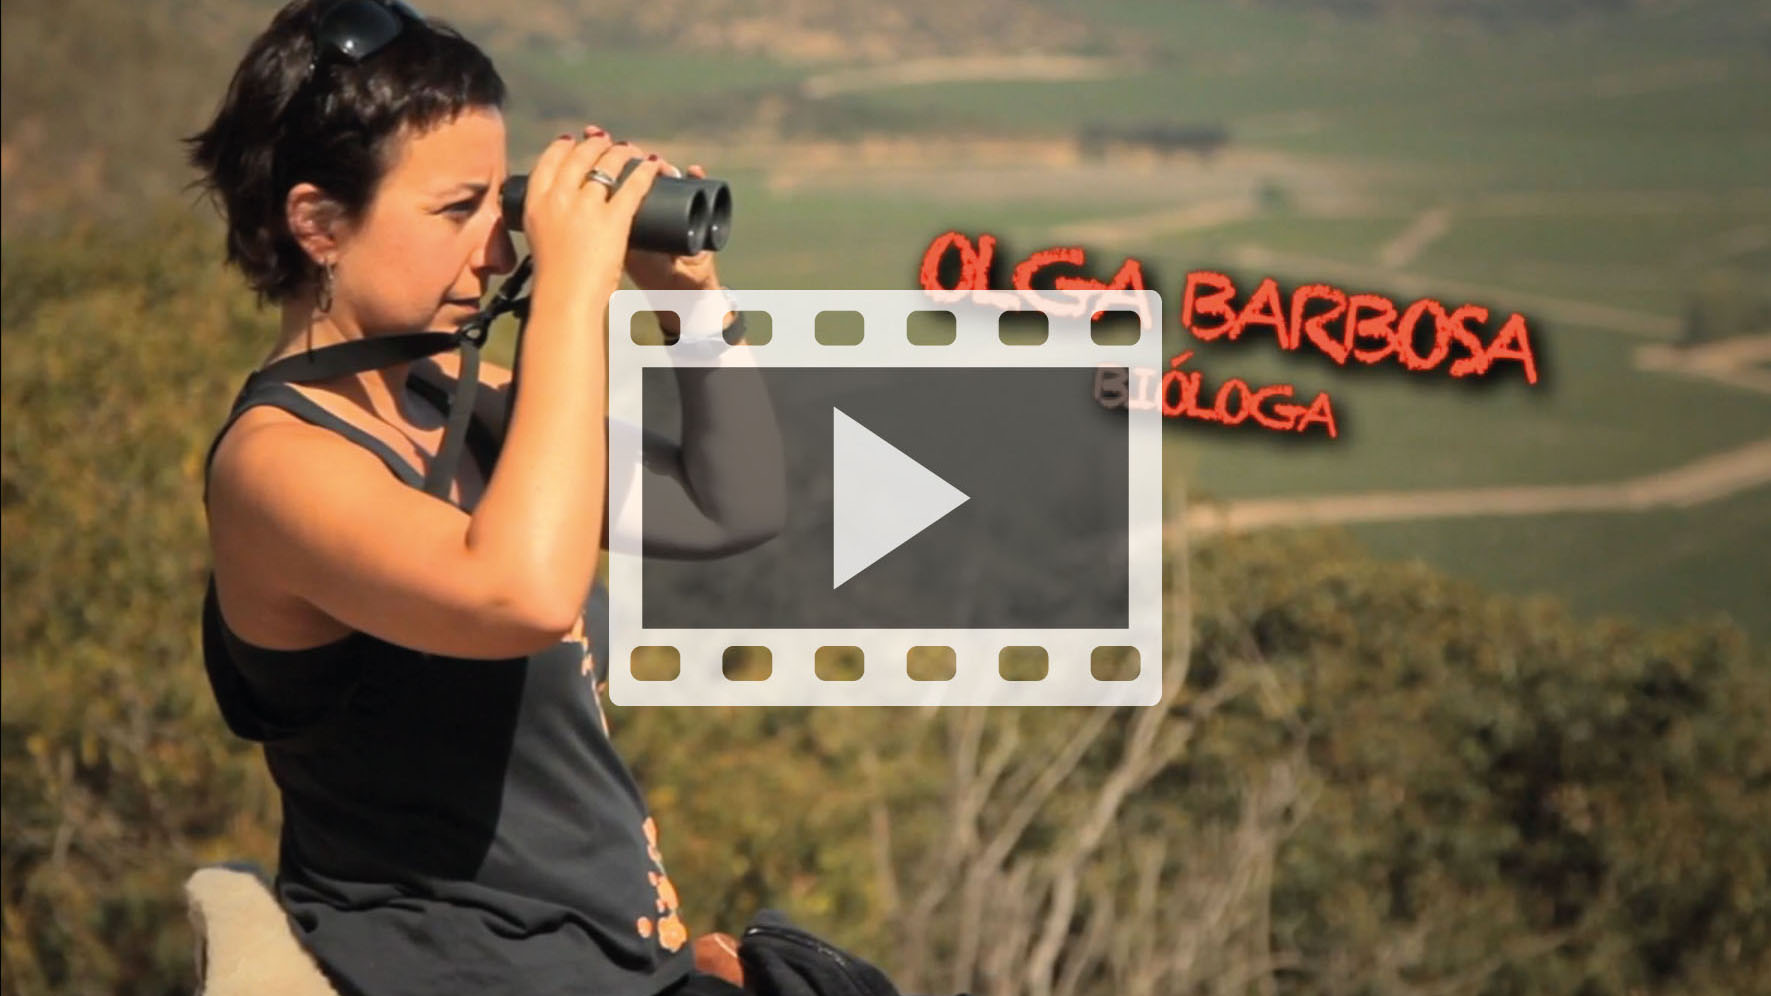 olga-barbosa-video-web